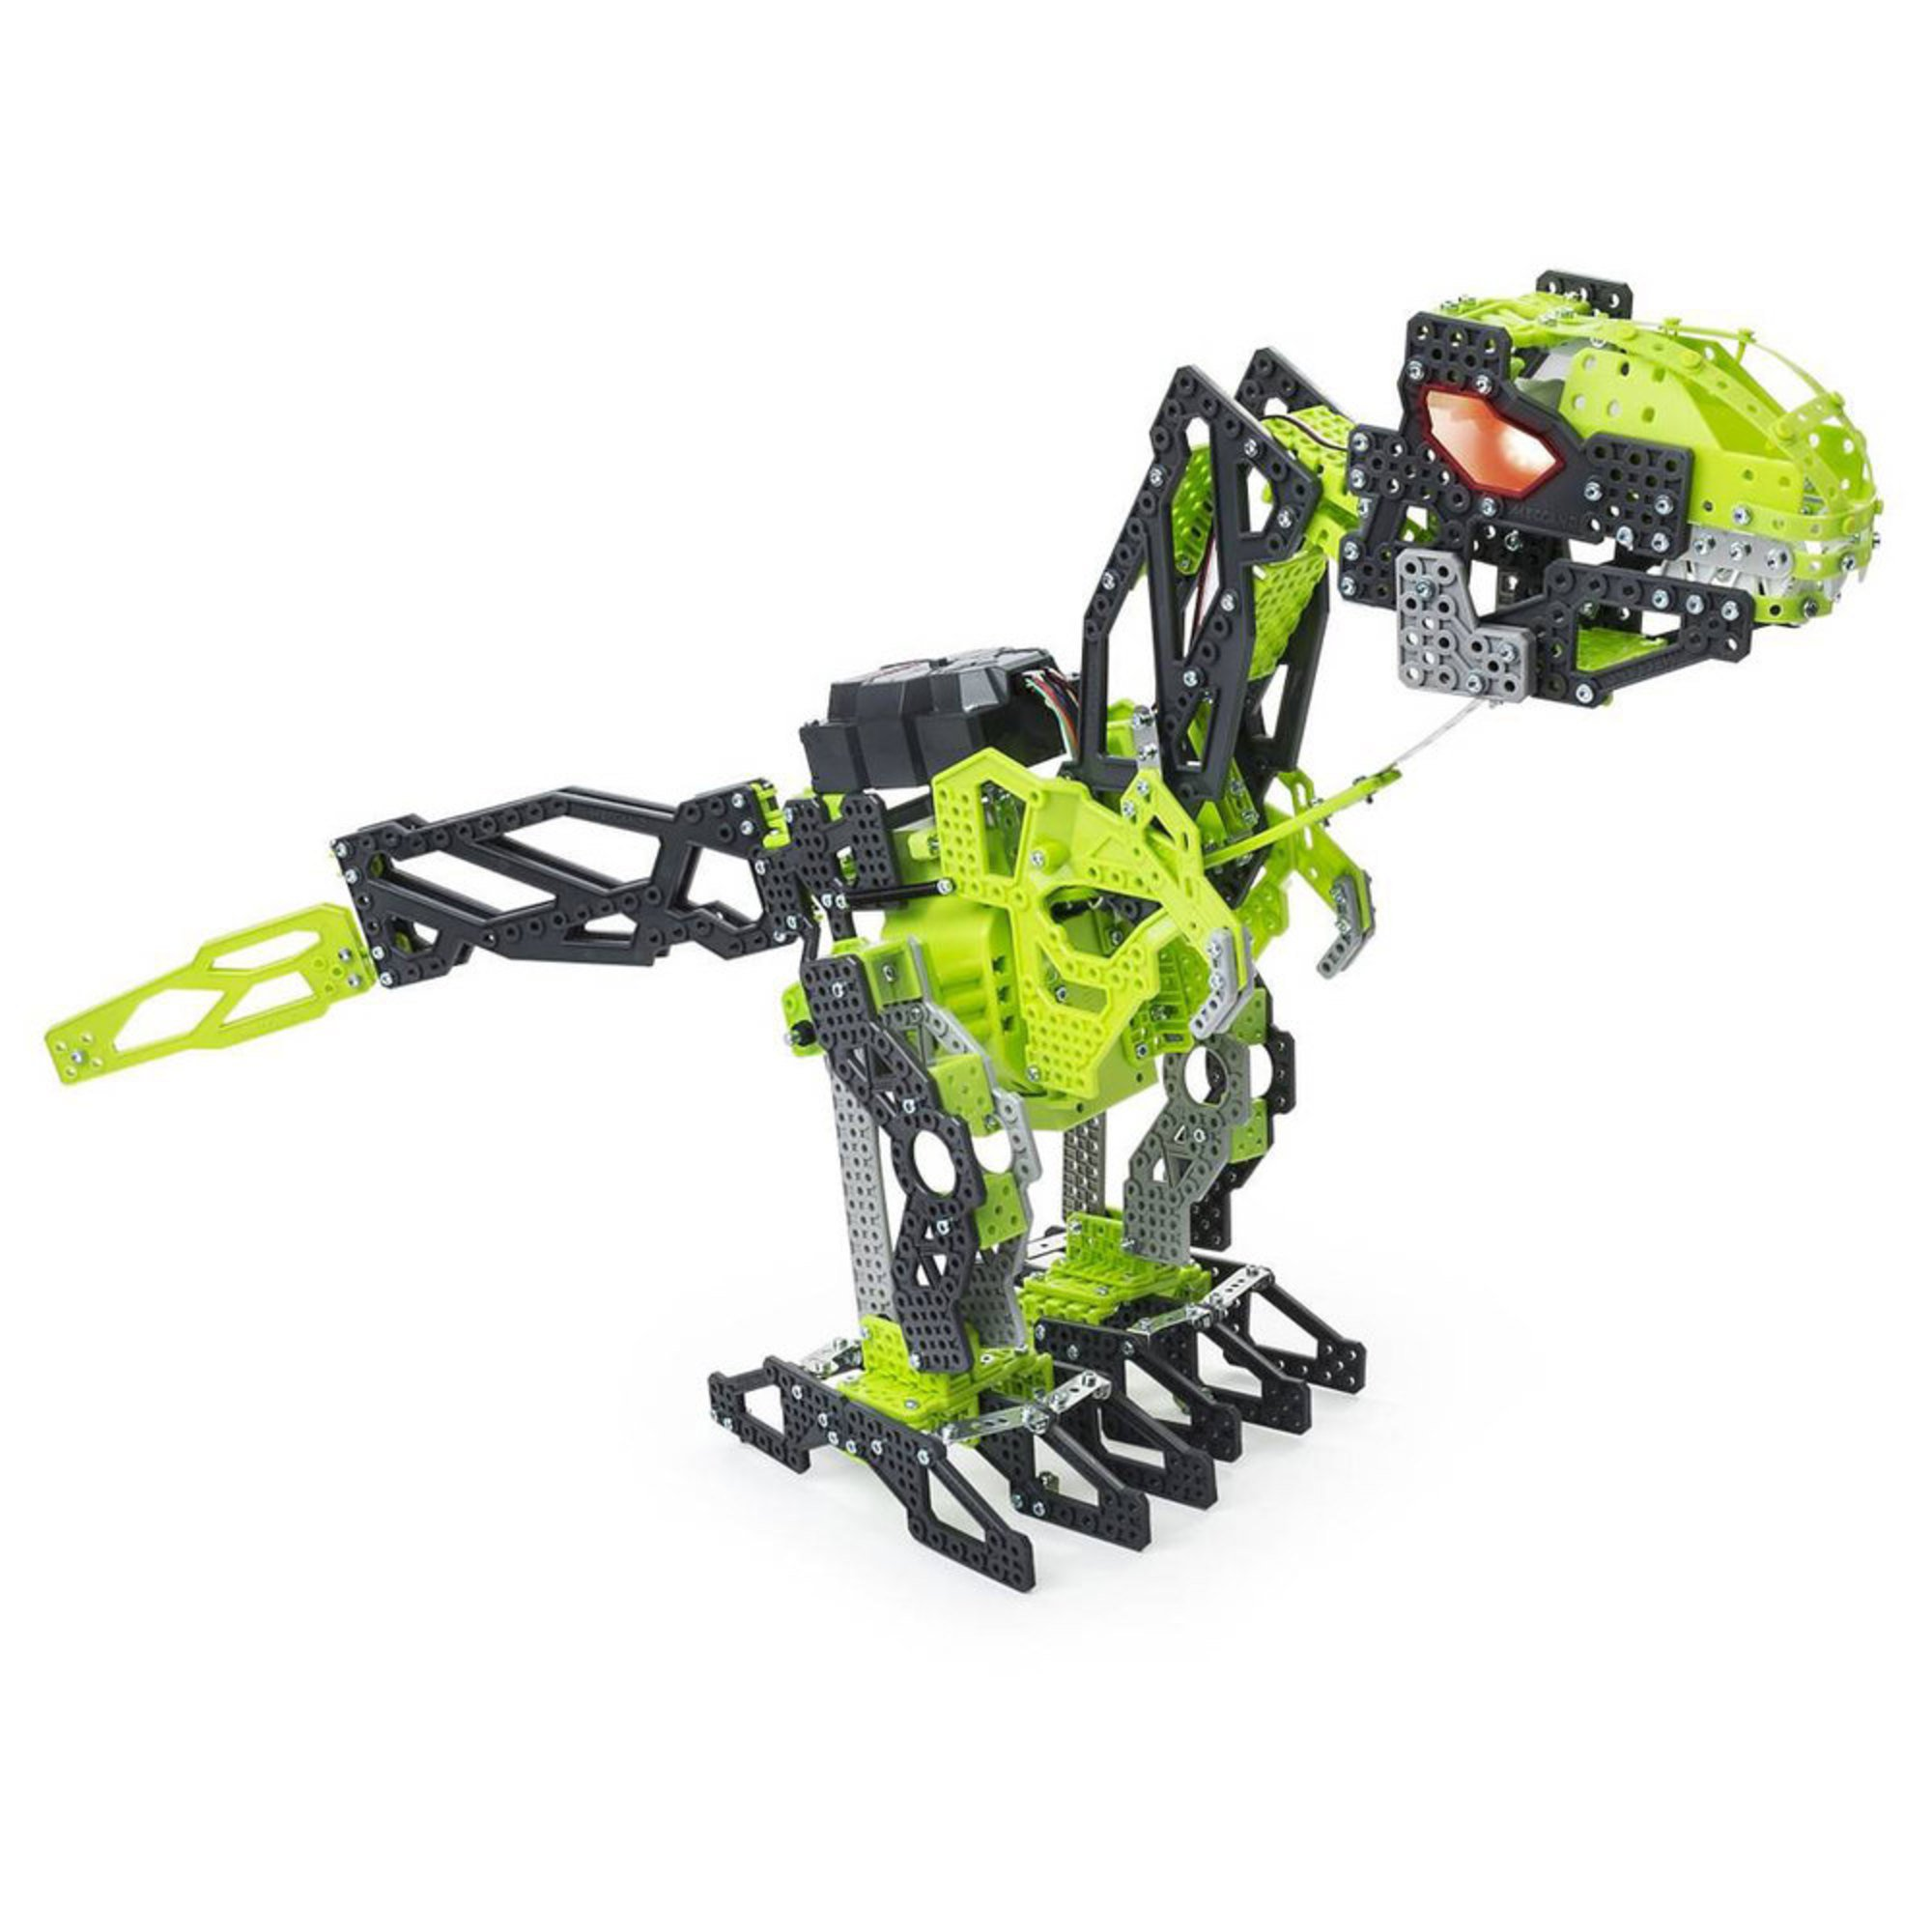 Best Meccano Sets And Toys For Kids : Meccano meccasaur t rex building sets kits baby